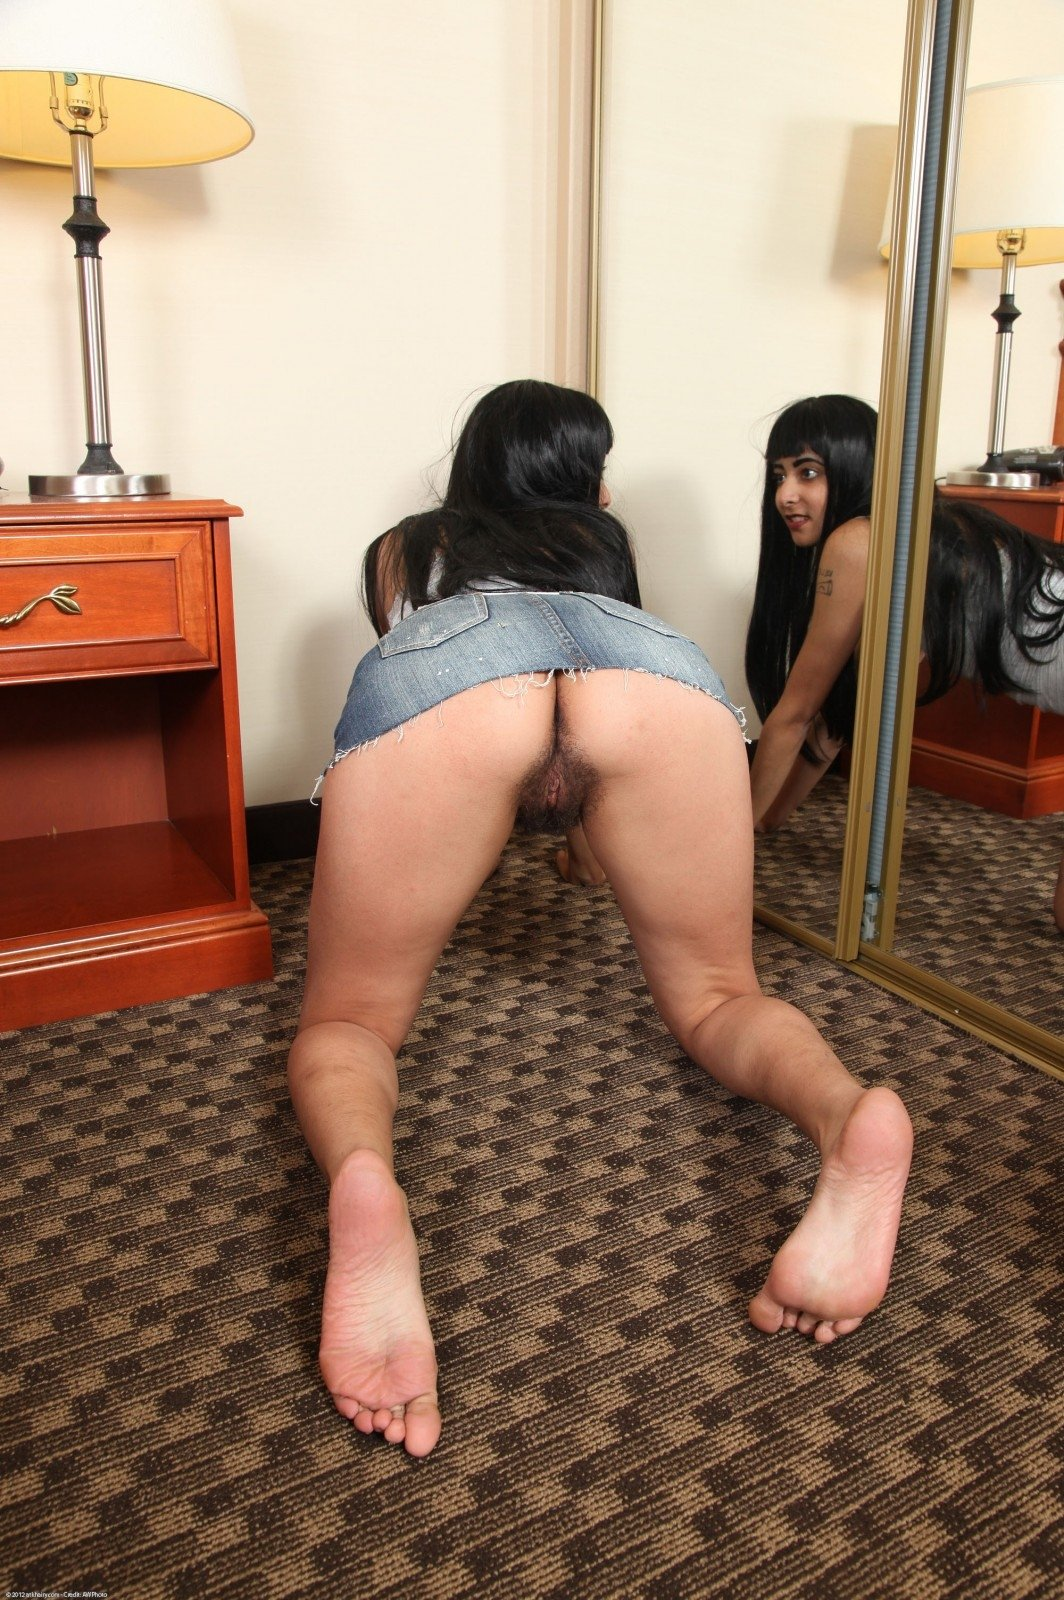 Wife spanked while husband watches